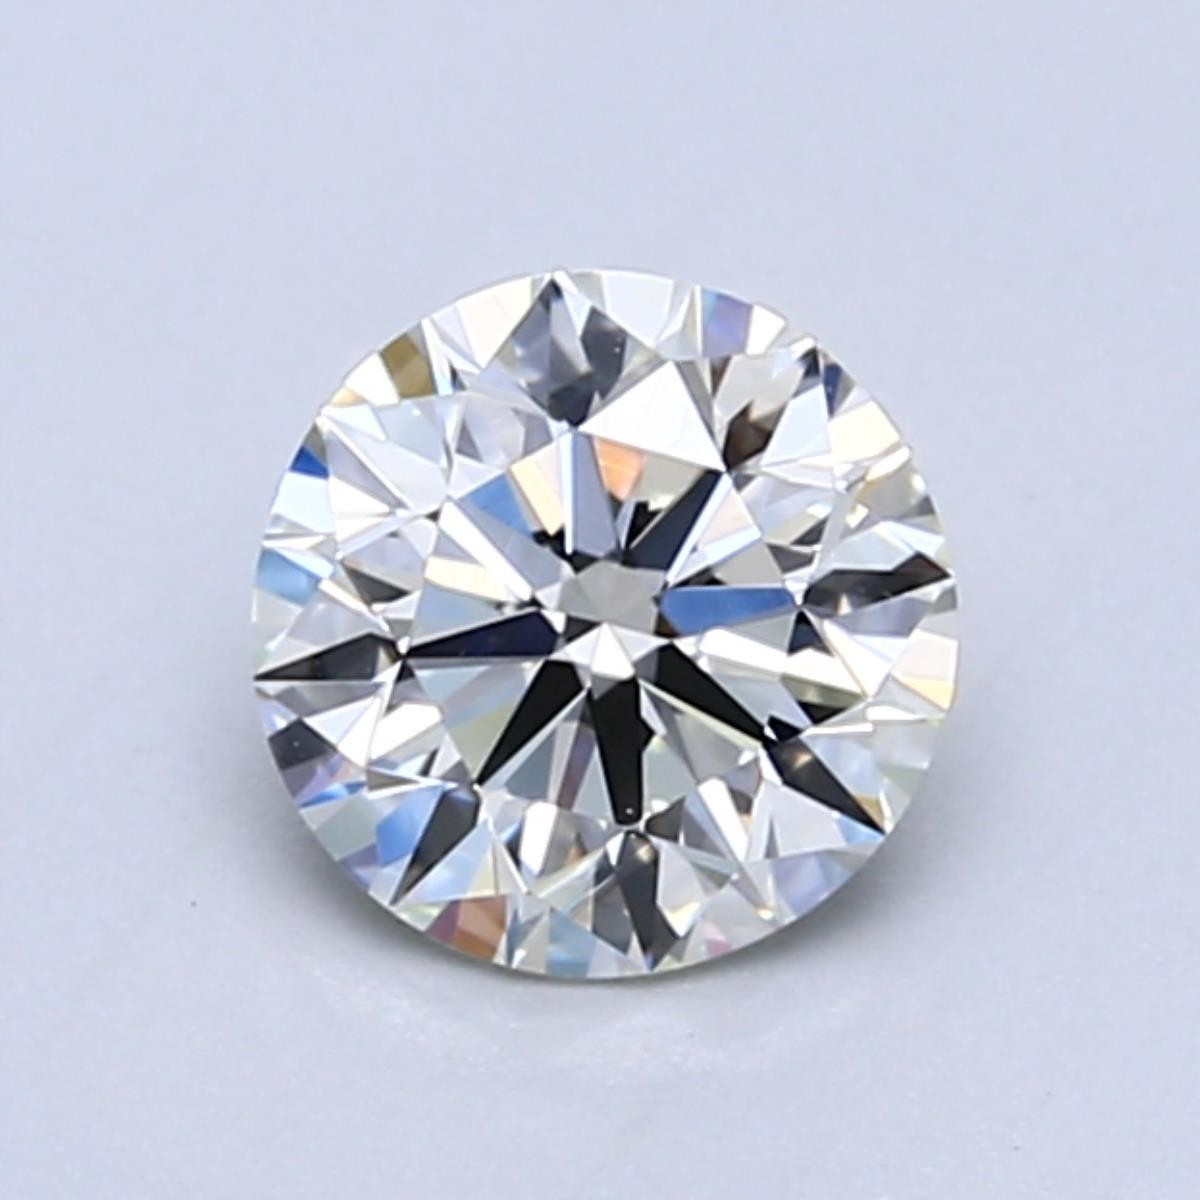 1 Carat I Color Diamond Facing Up White